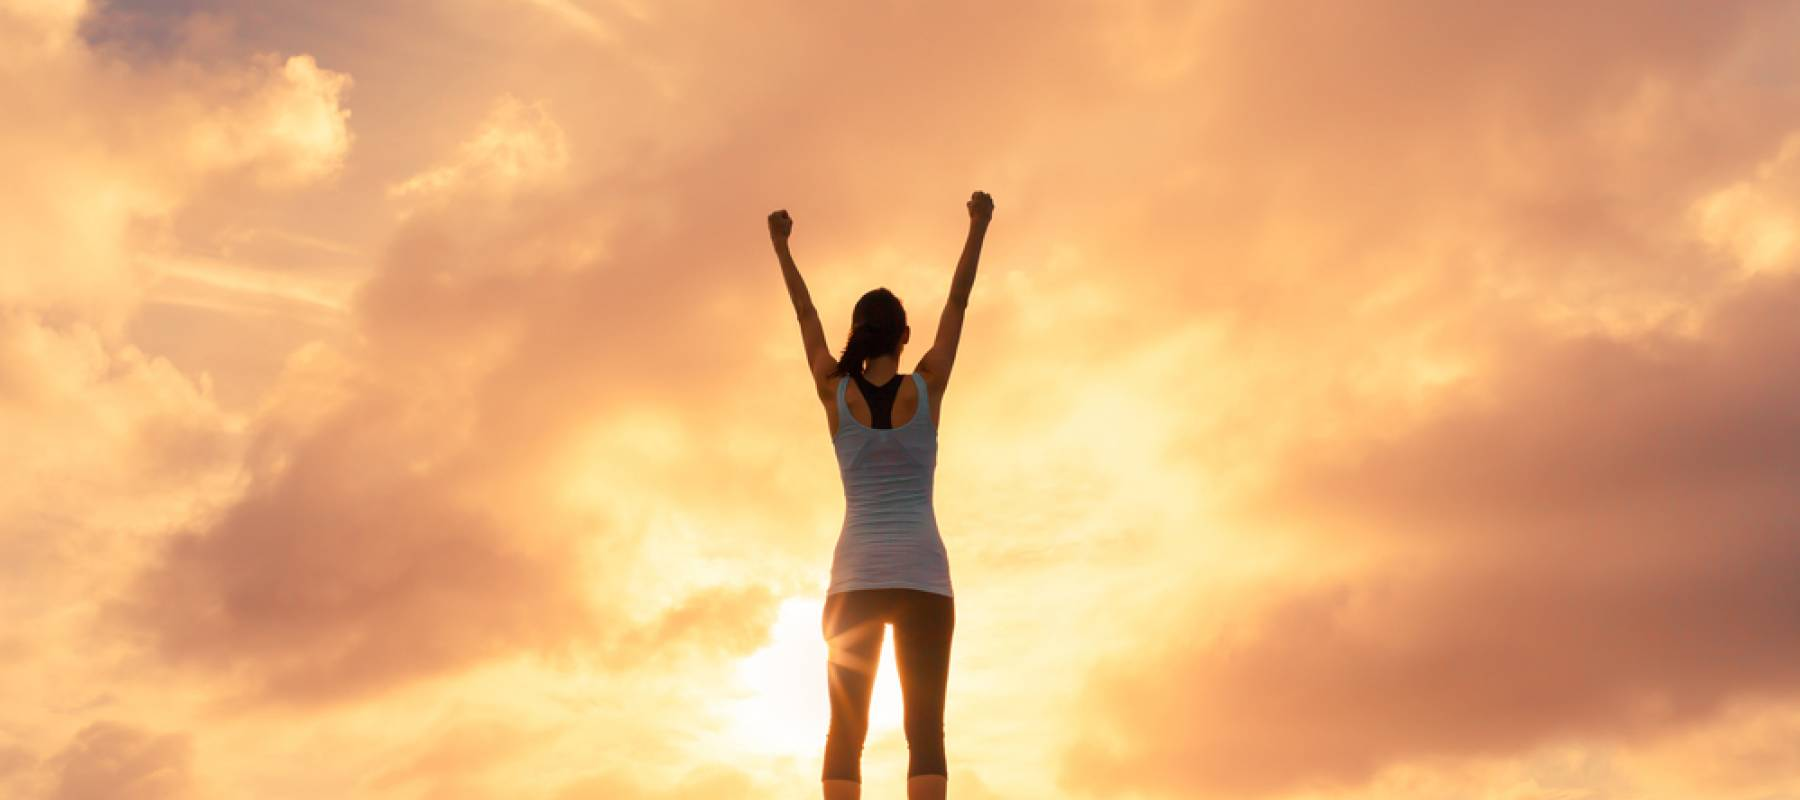 woman's silhouette, she is raising her arms in victory